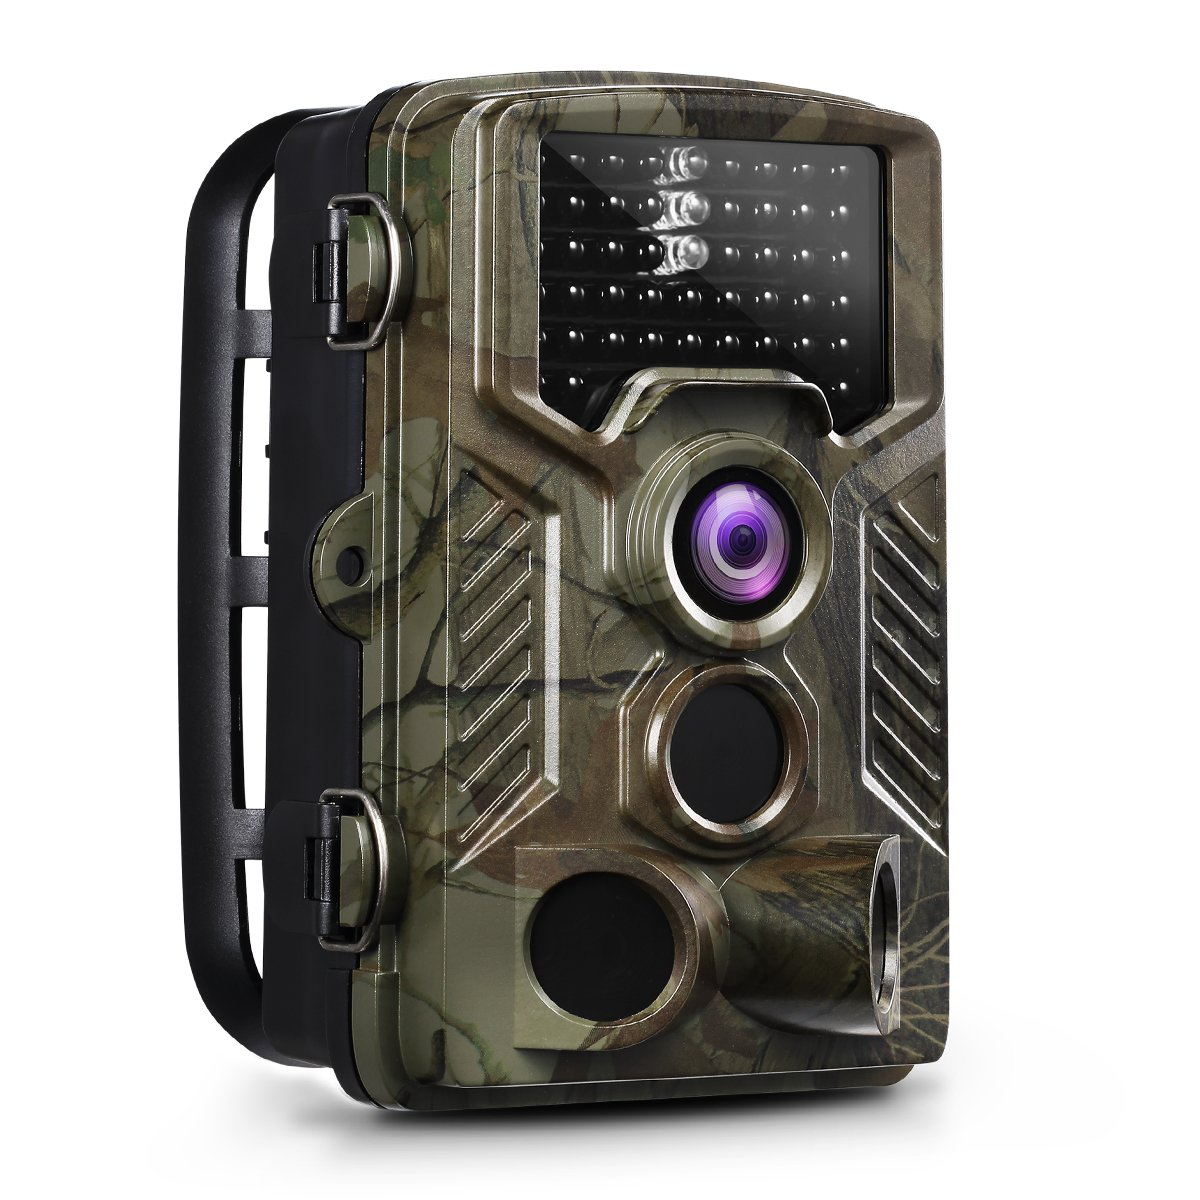 OGL Trail Camera 16MP 1080P 2.4'' LCD Game Hunting Camera 120° PIR Sensor 0.2s Fasts Trigger Night Vision up to 65ft/20m with 46Pcs 850nm Infrared LED IP56 Waterproof 32GB for Wildlife Scouting by OGL